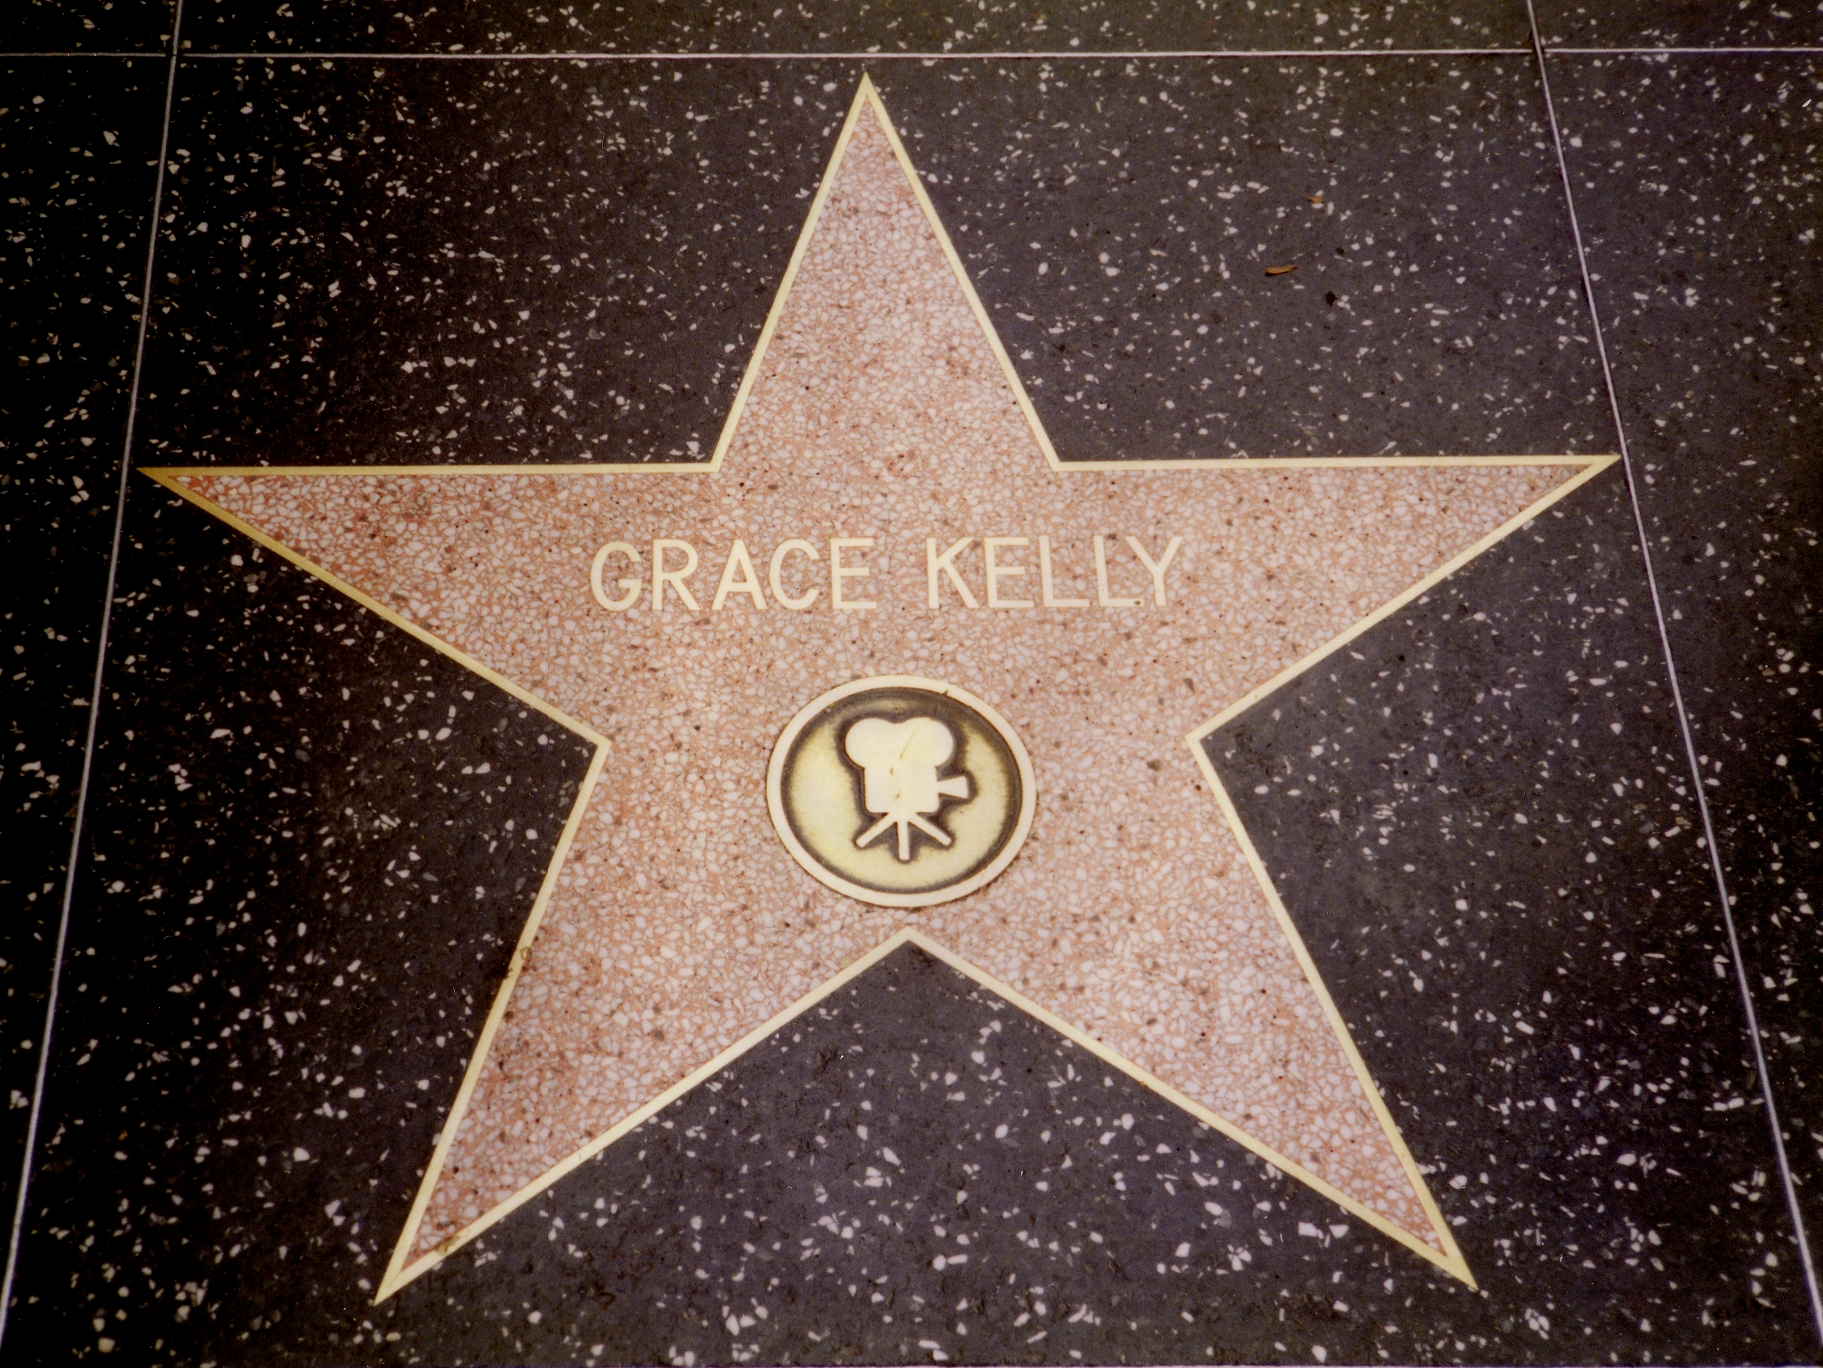 Walk_of_Fame_Grace_Kelly.jpg